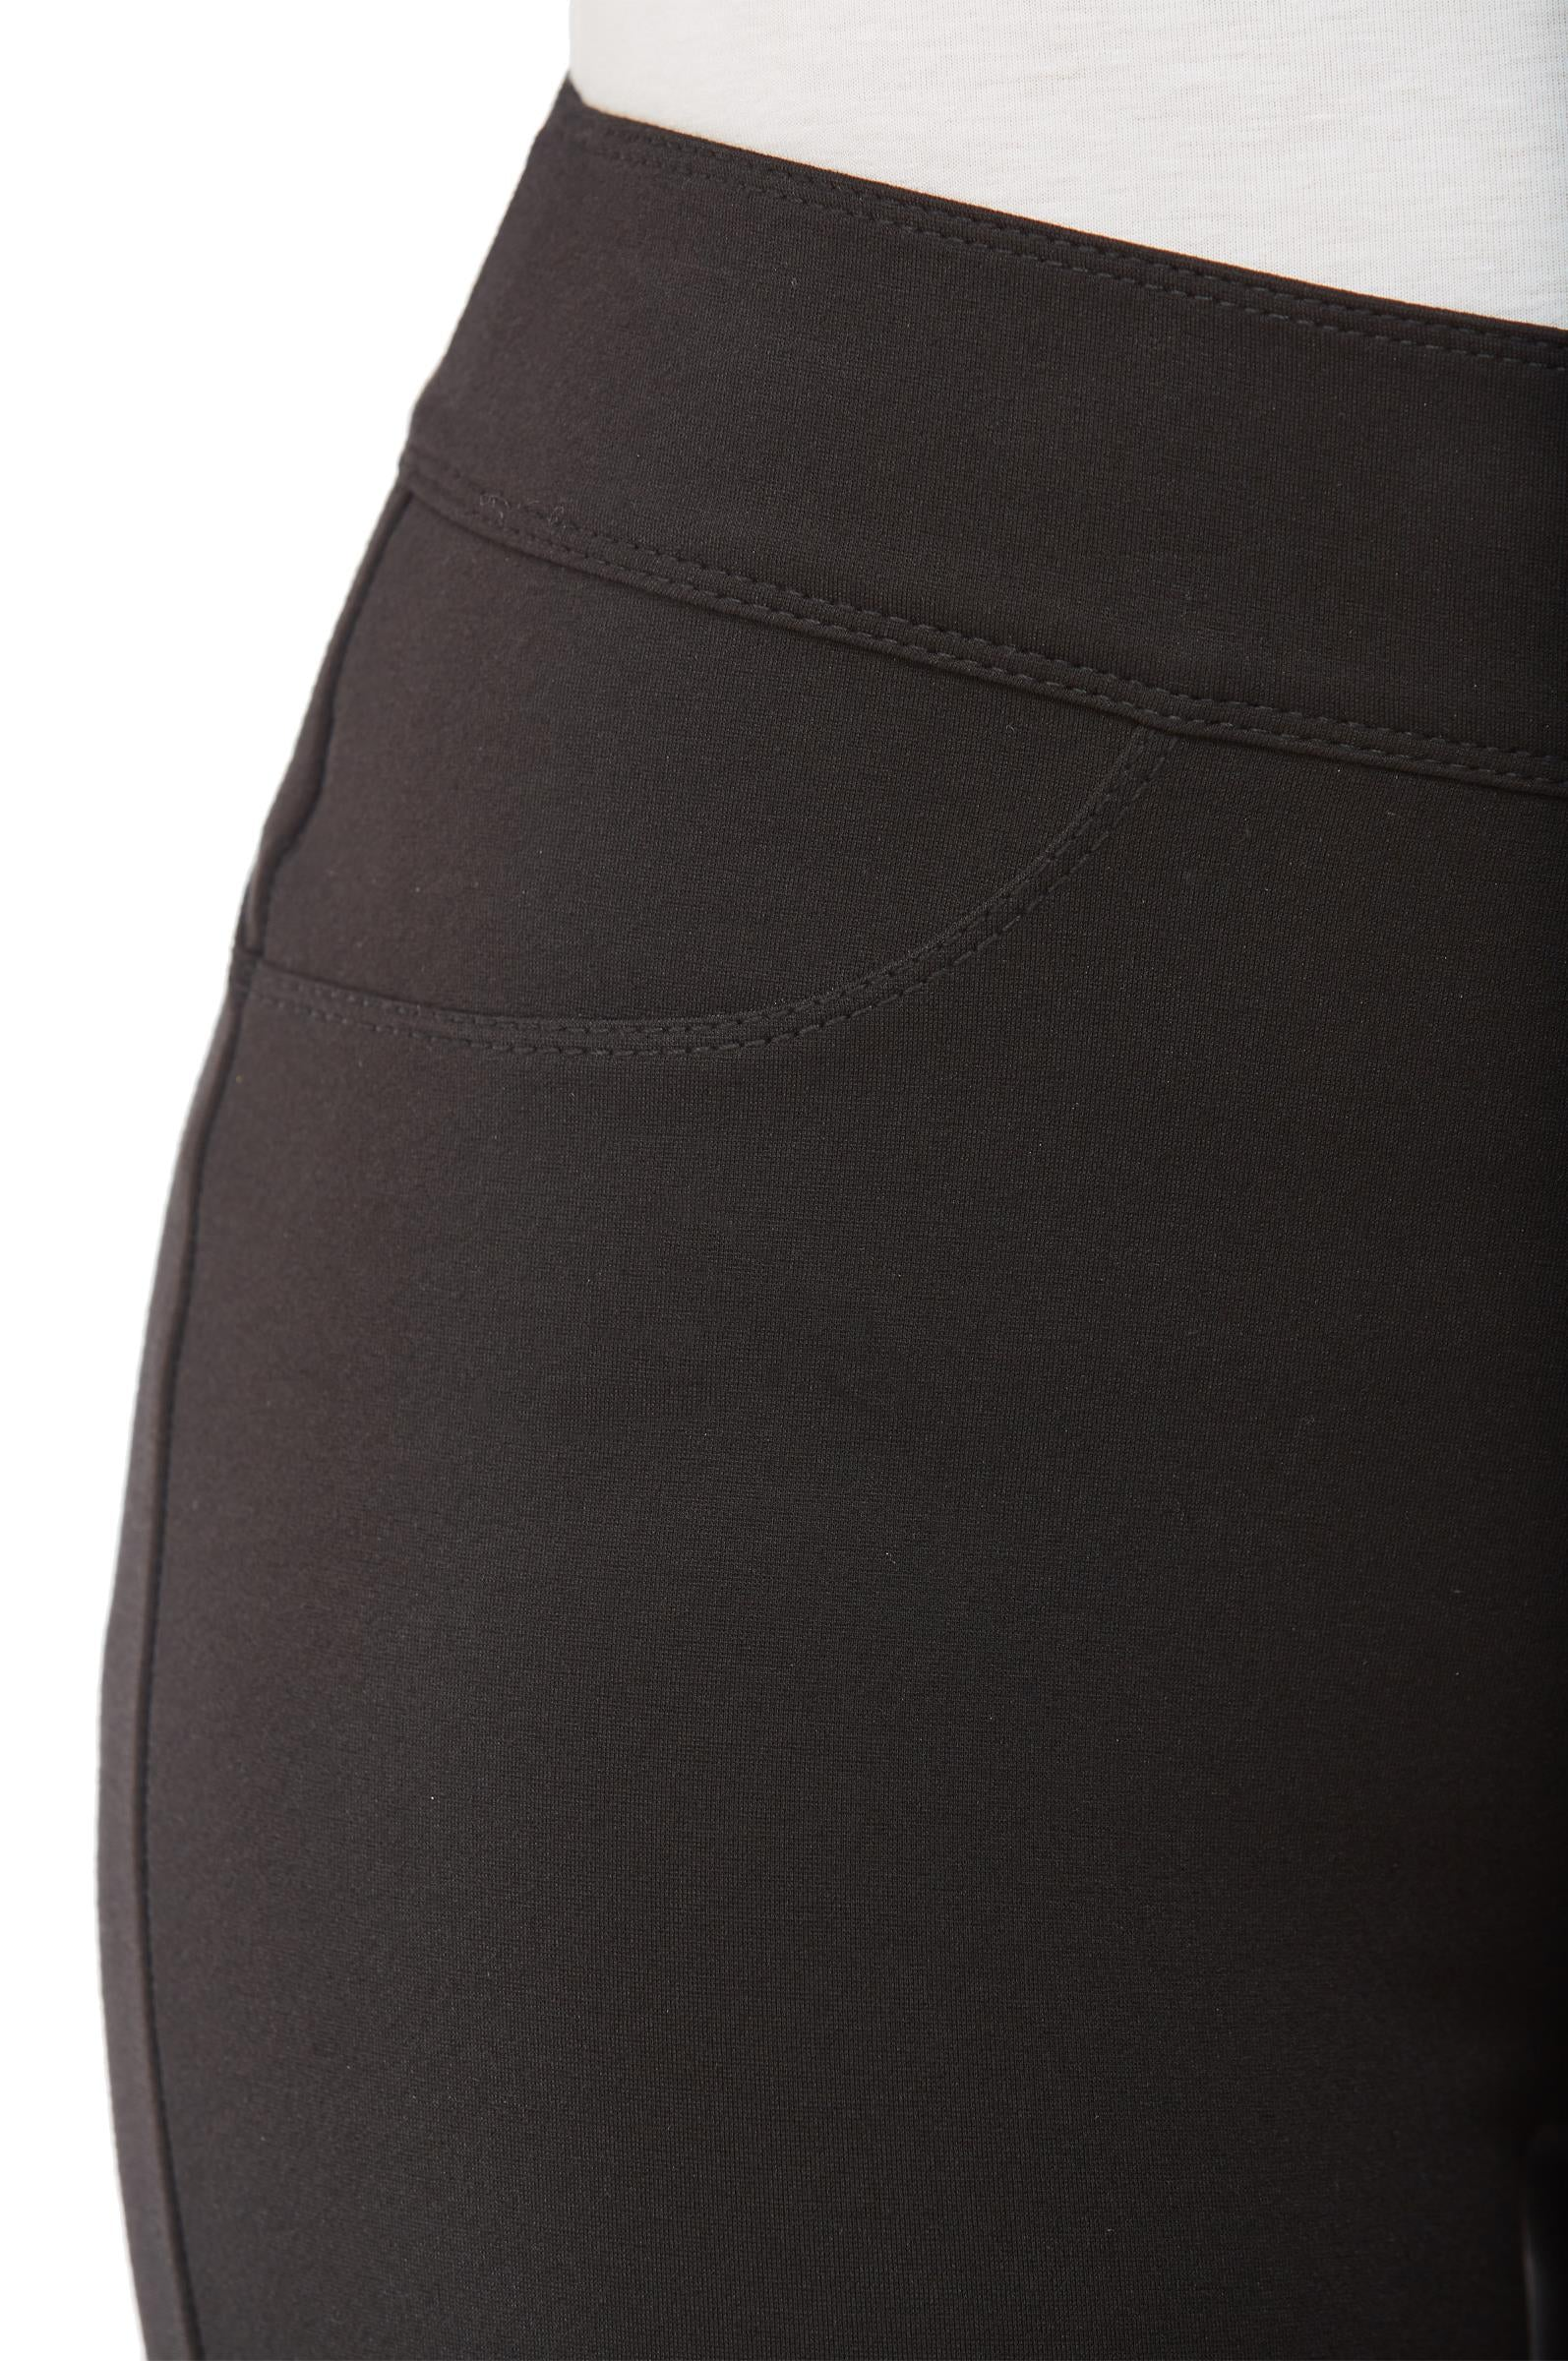 Detail view black Nygard Slims straight leg luxe ponte pants